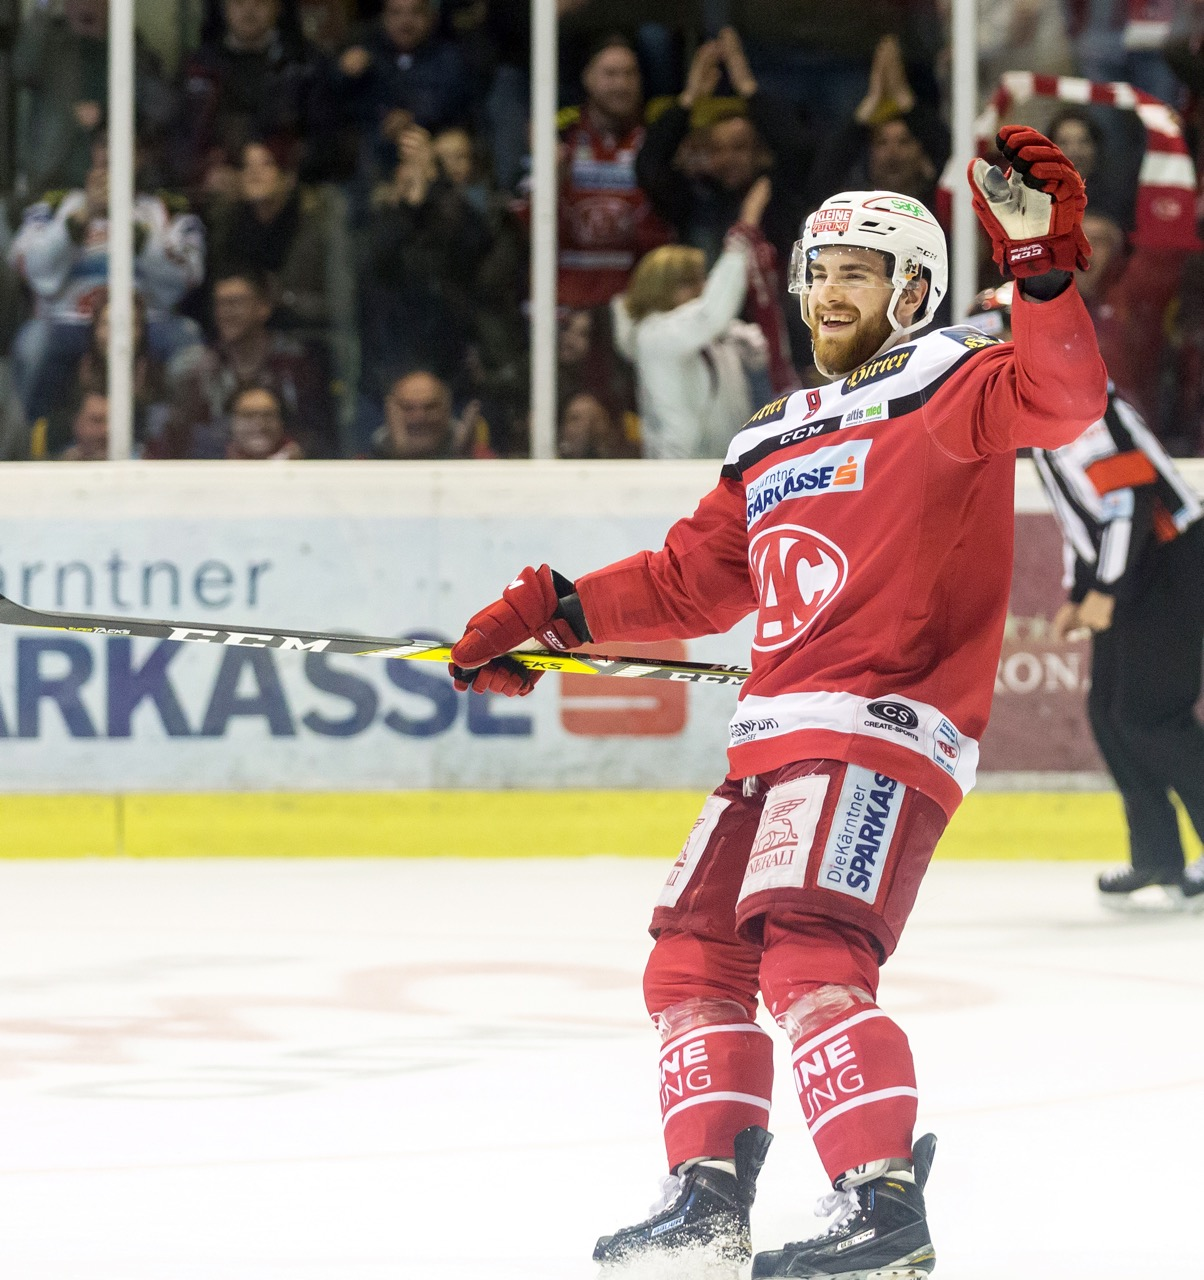 21.03.2017, Stadthalle, Klagenfurt, AUT, EBEL, EC KAC vs EC Red Bull Salzburg, Semifinale, 4. Spiel, im Bild Matthew Neal (EC KAC, #9) // during the Erste Bank Eishockey League 4th semifinal match of playoff series EC KAC vs EC Red Bull Salzburg at the City Hall in Klagenfurt, Austria on 2017/03/21. EXPA Pictures © 2017, PhotoCredit: EXPA/ Gert Steinthaler EXPA/ Mag. Gert Steinthaler